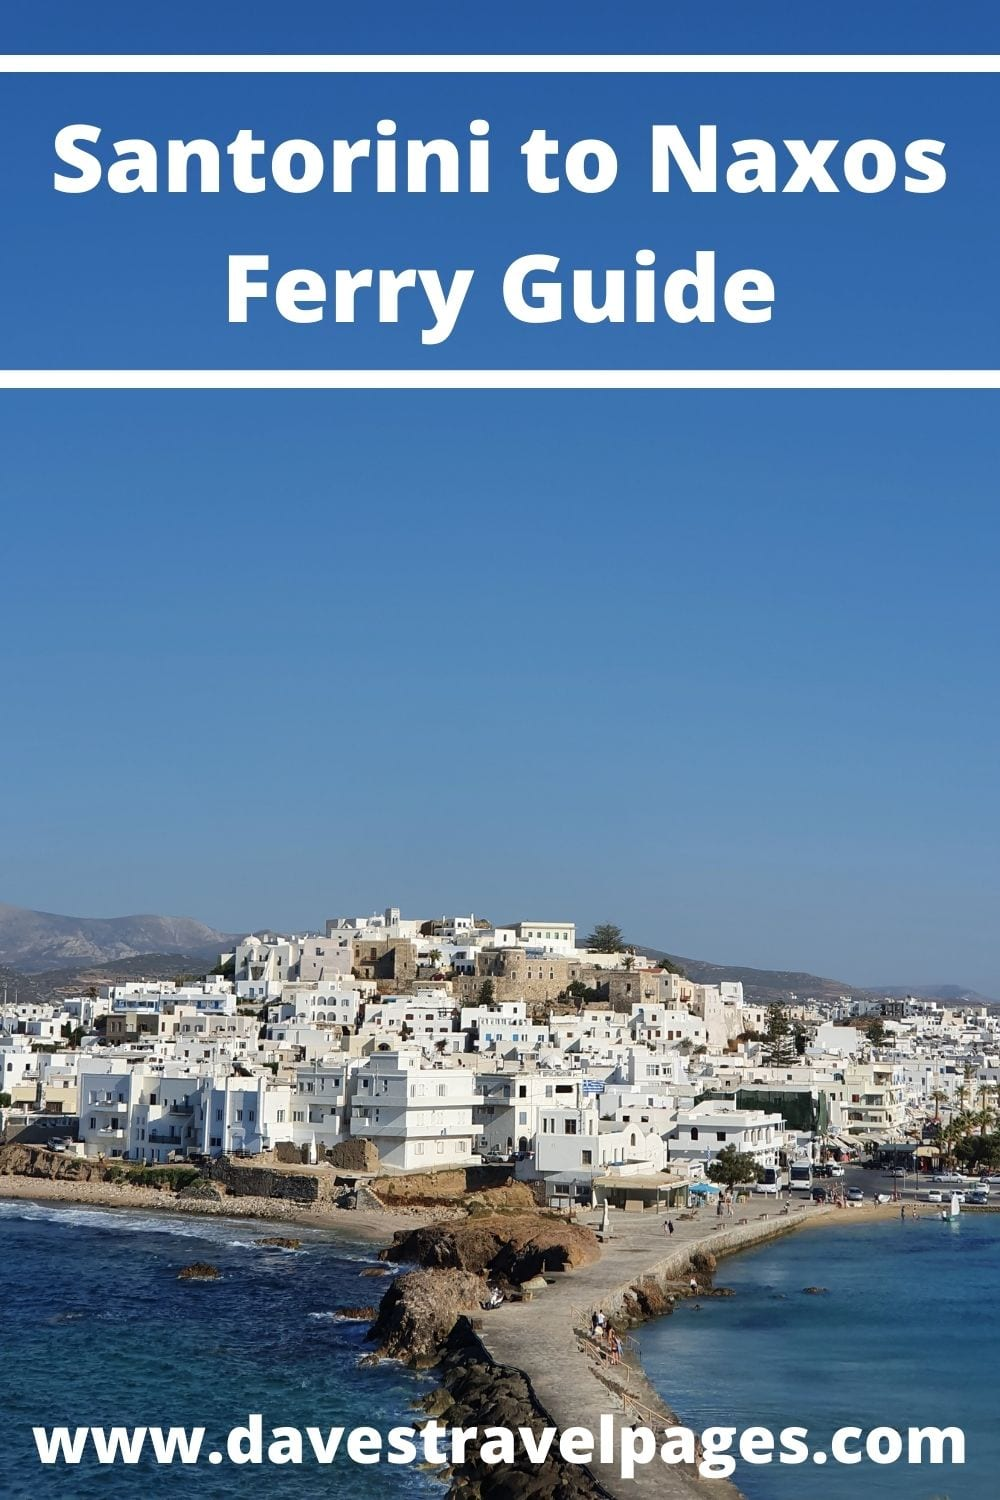 How to take the ferry from Santorini to Naxos in Greece